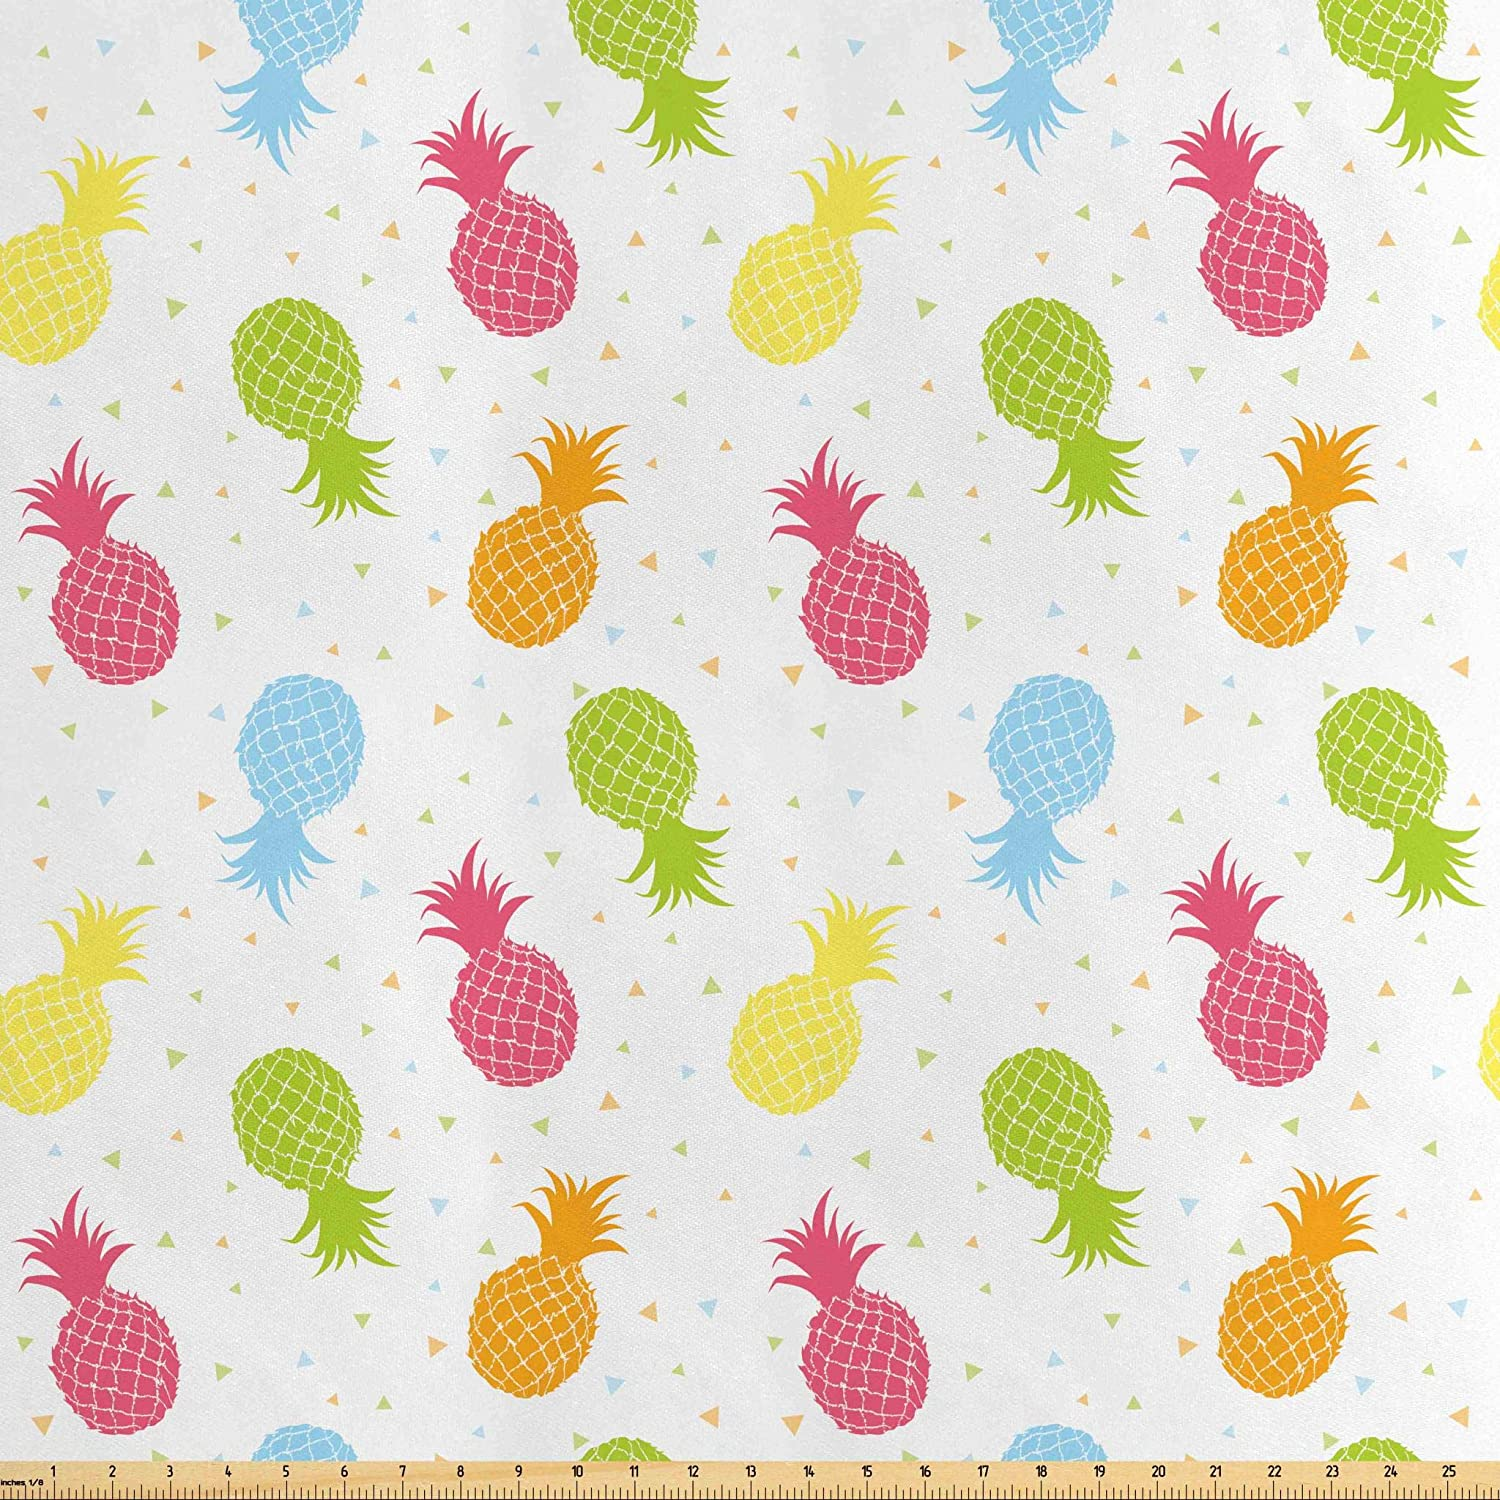 Lunarable Pineapple Fabric by The Yard, Colorful Pineapples Spring Refreshment Cheering Design Illustration, Decorative Satin Fabric for Home Textiles and Crafts, 3 Yards, Multicolor